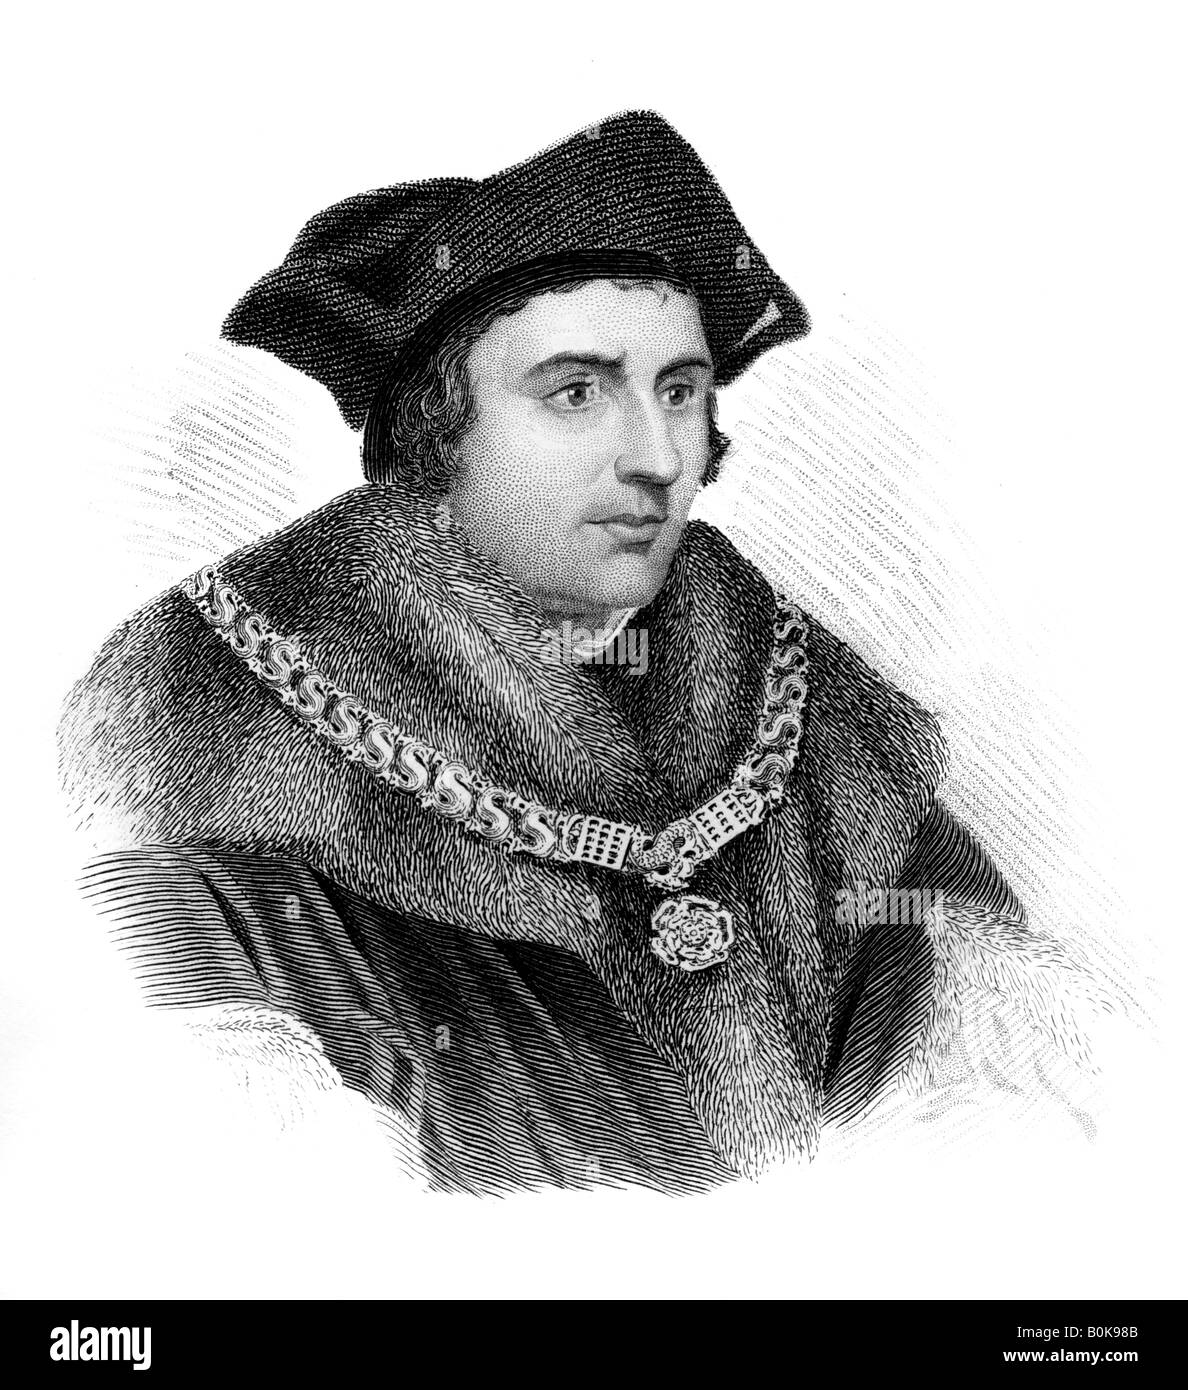 Saint Sir Thomas More, English politician, scholar and martyr, (c1850). Artist: Unknown Stock Photo